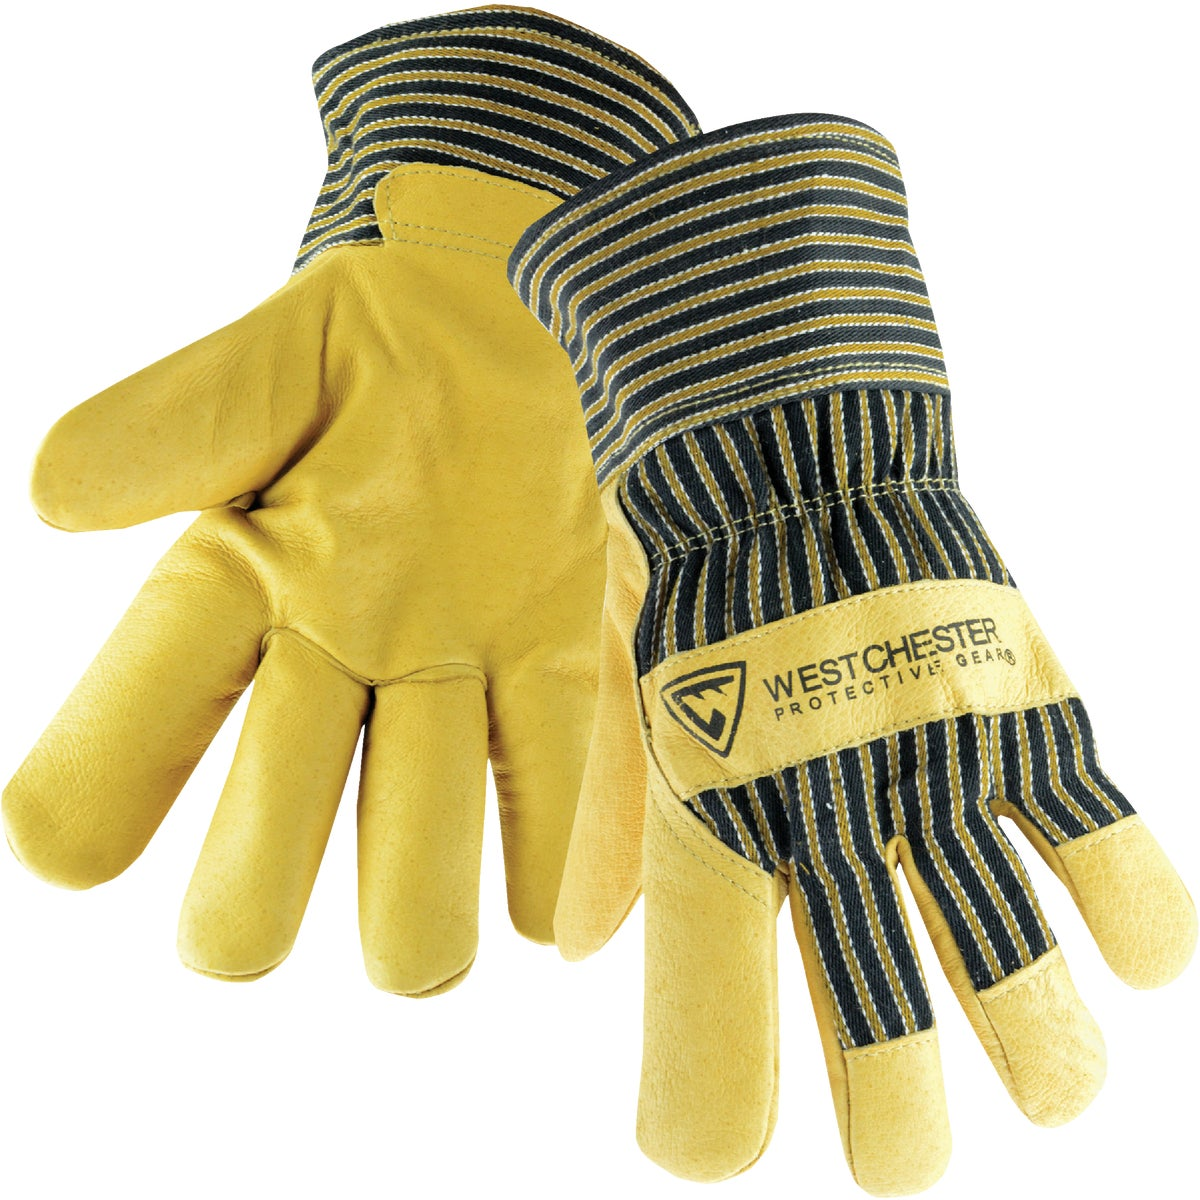 LRG THERMO PIGSKIN GLOVE - 5235L by Wells Lamont